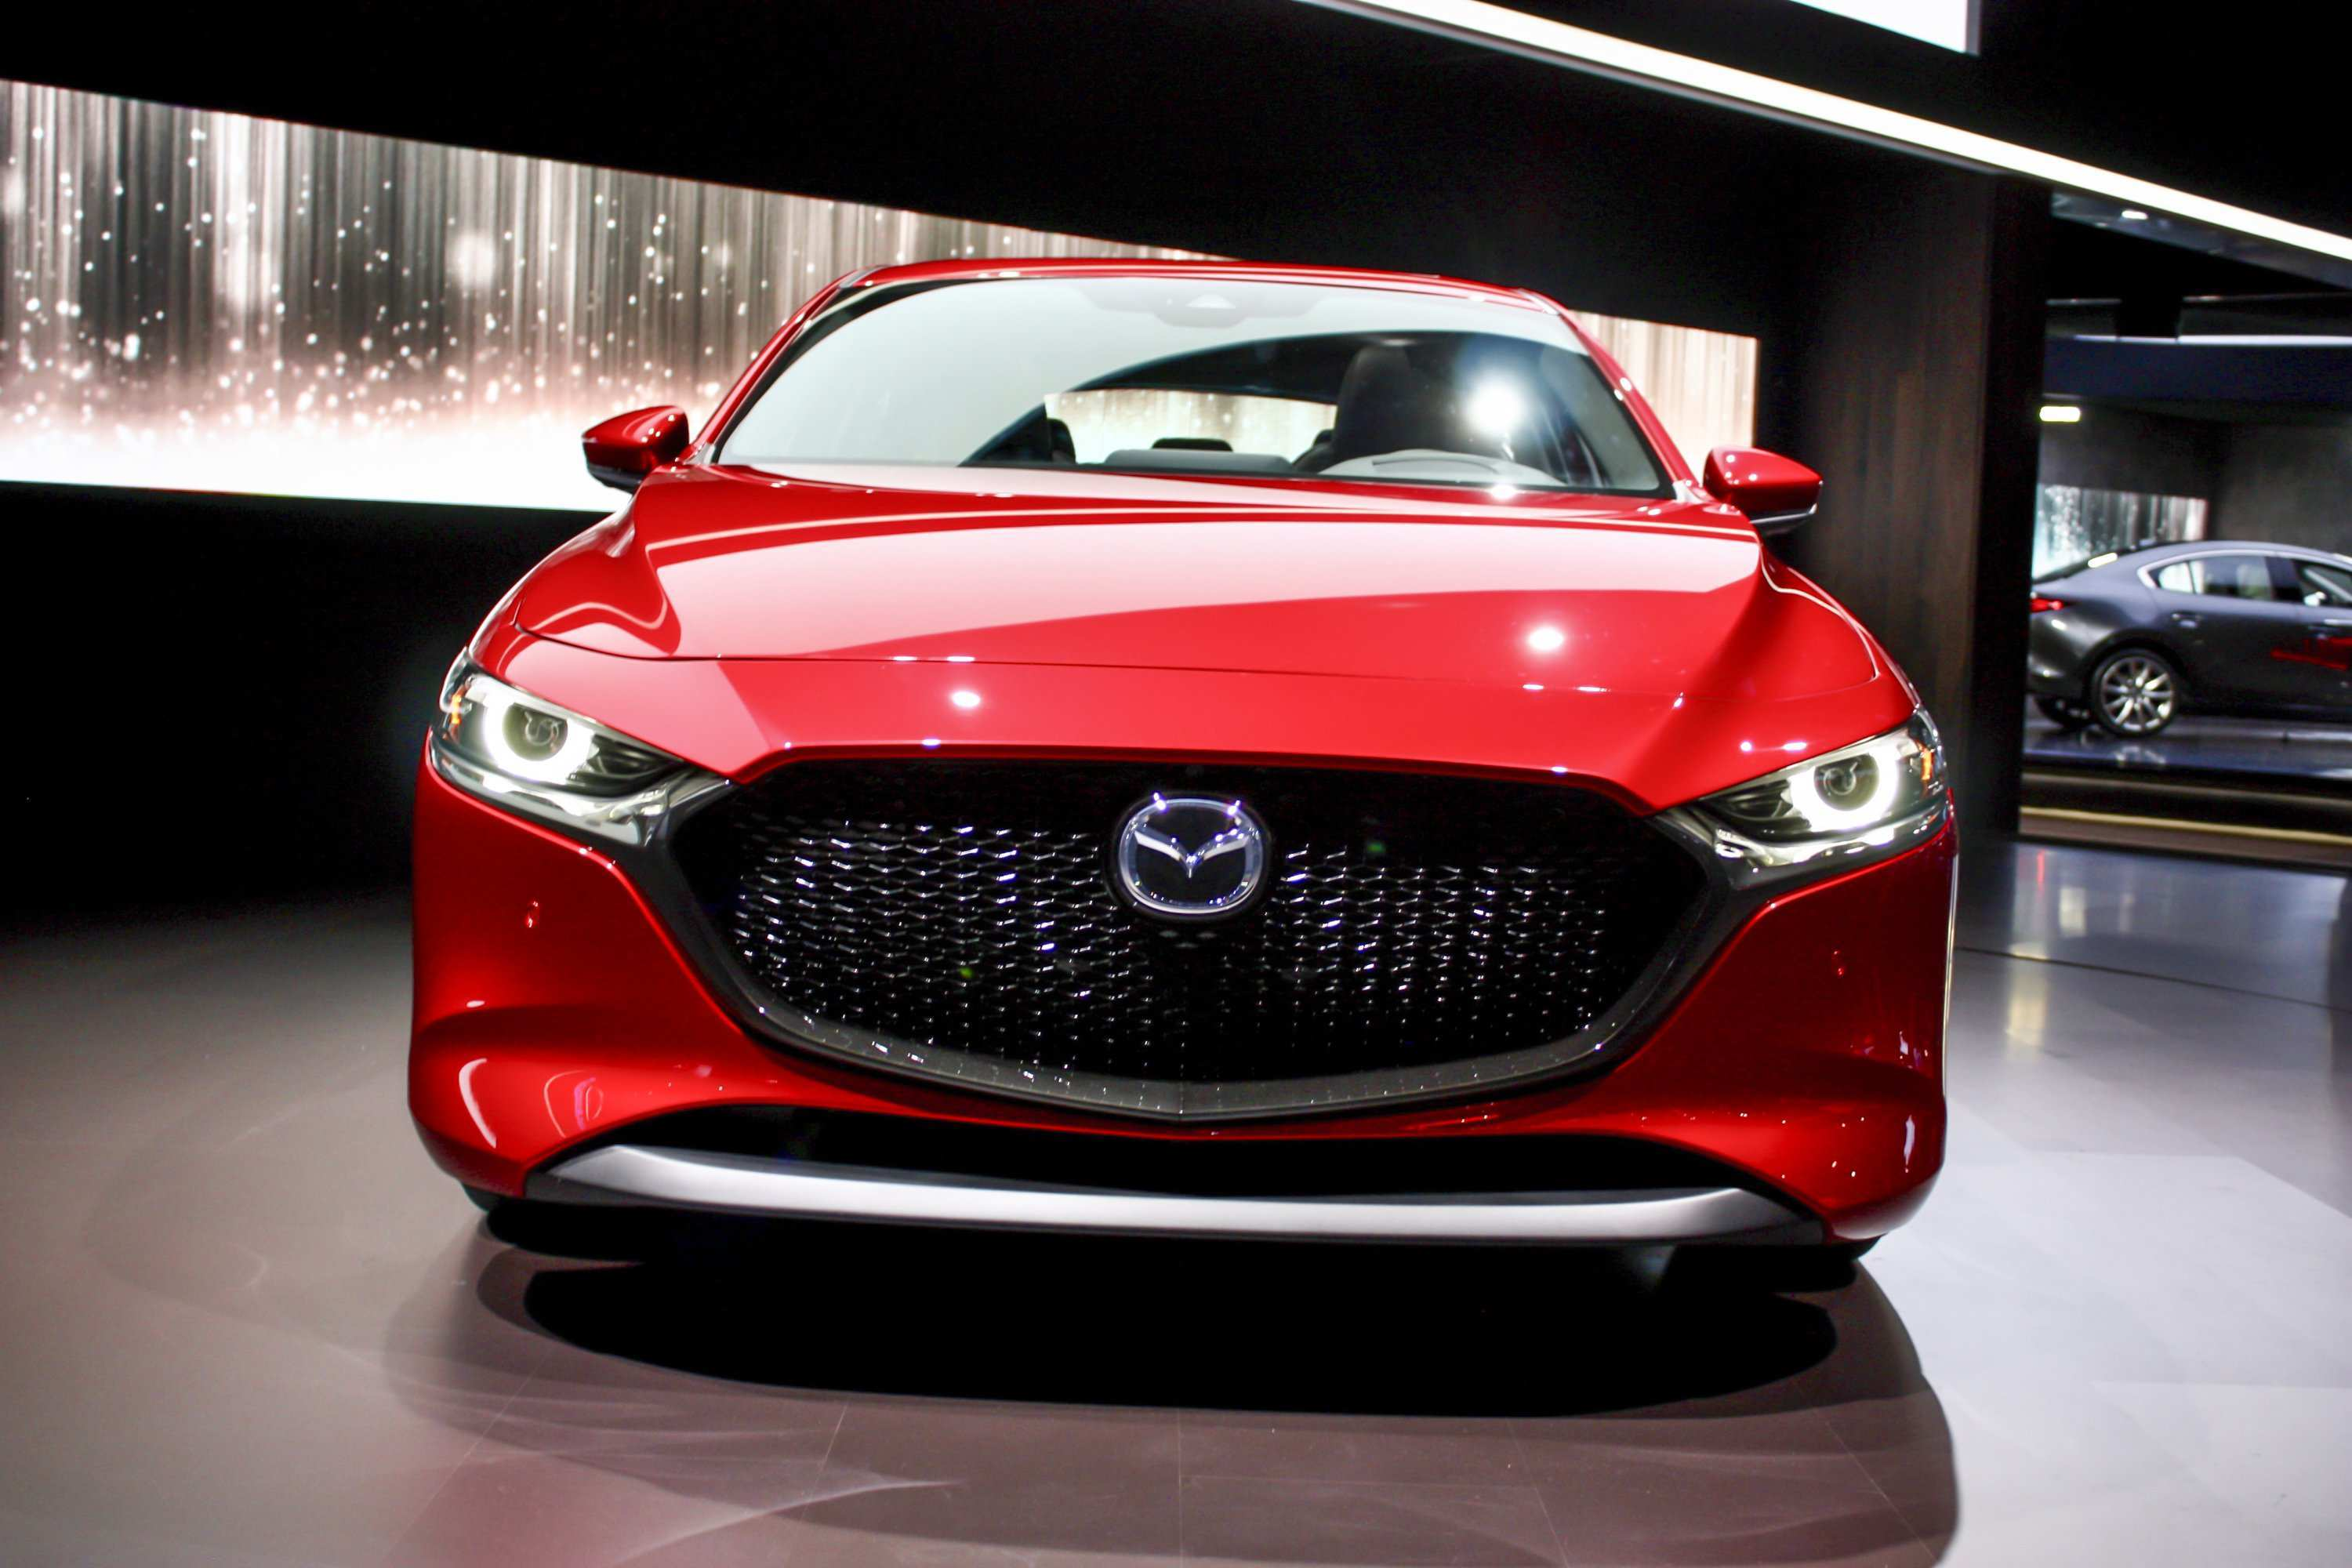 62 The 2020 Mazda 3 Style